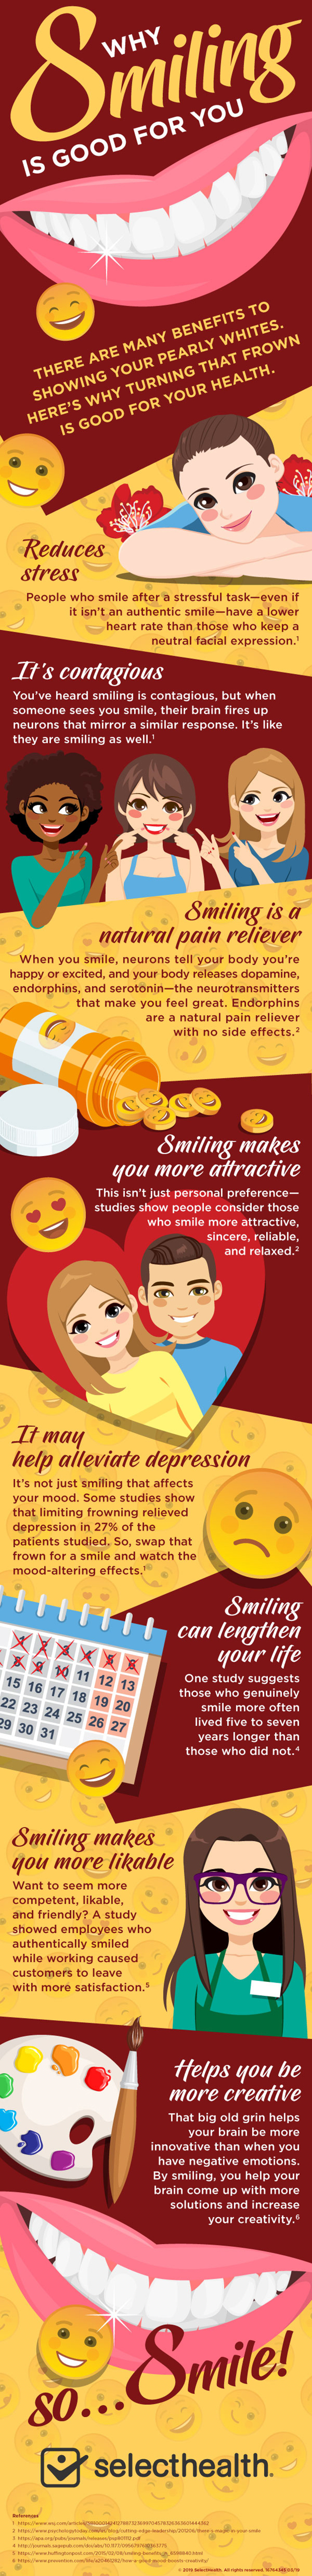 Why Smiling is Good For You Infographic